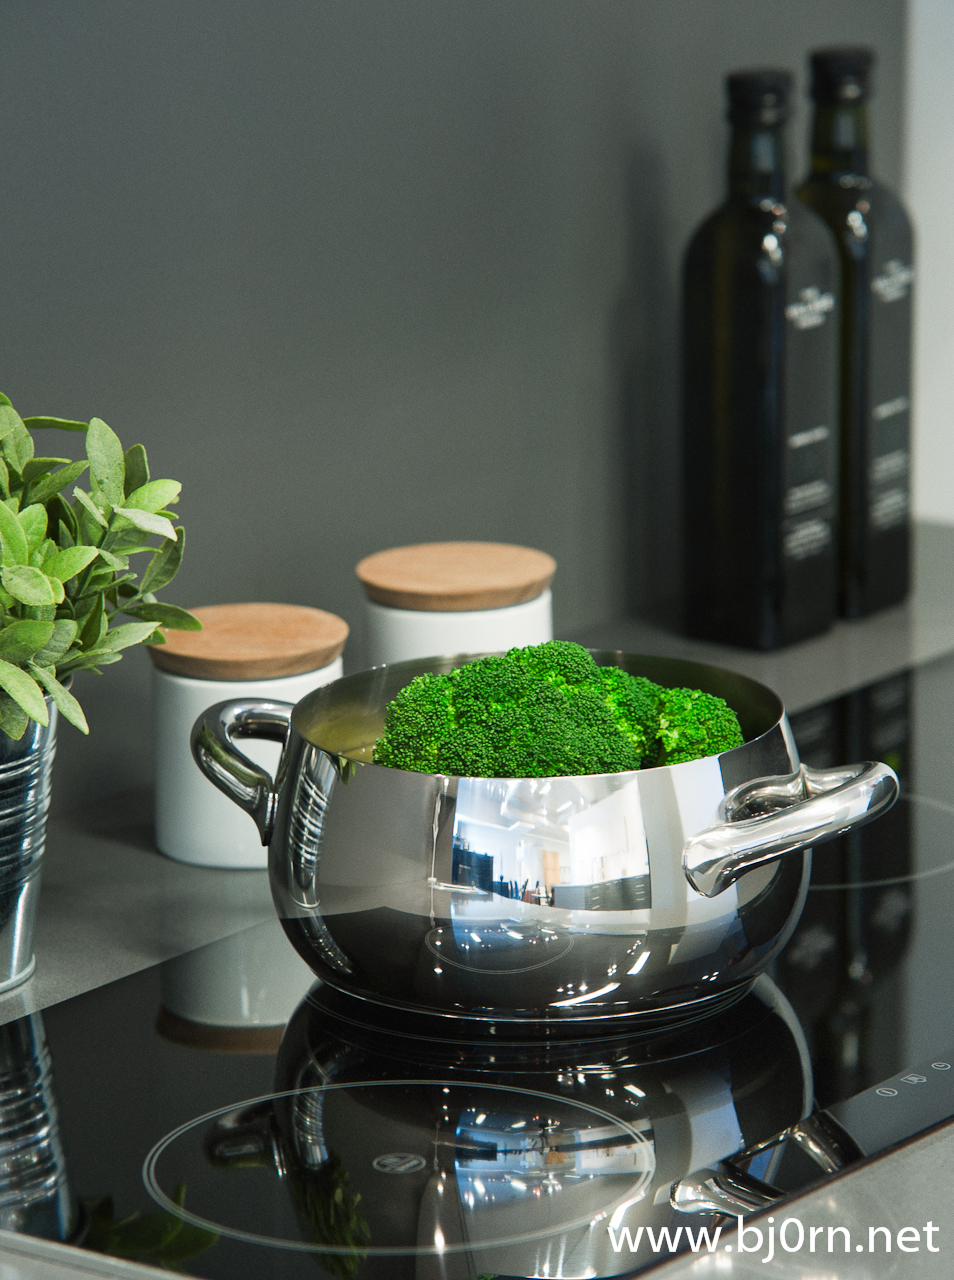 photo: Bjørn Christiansen, Saucepan with broccoli at Kvik - Lade